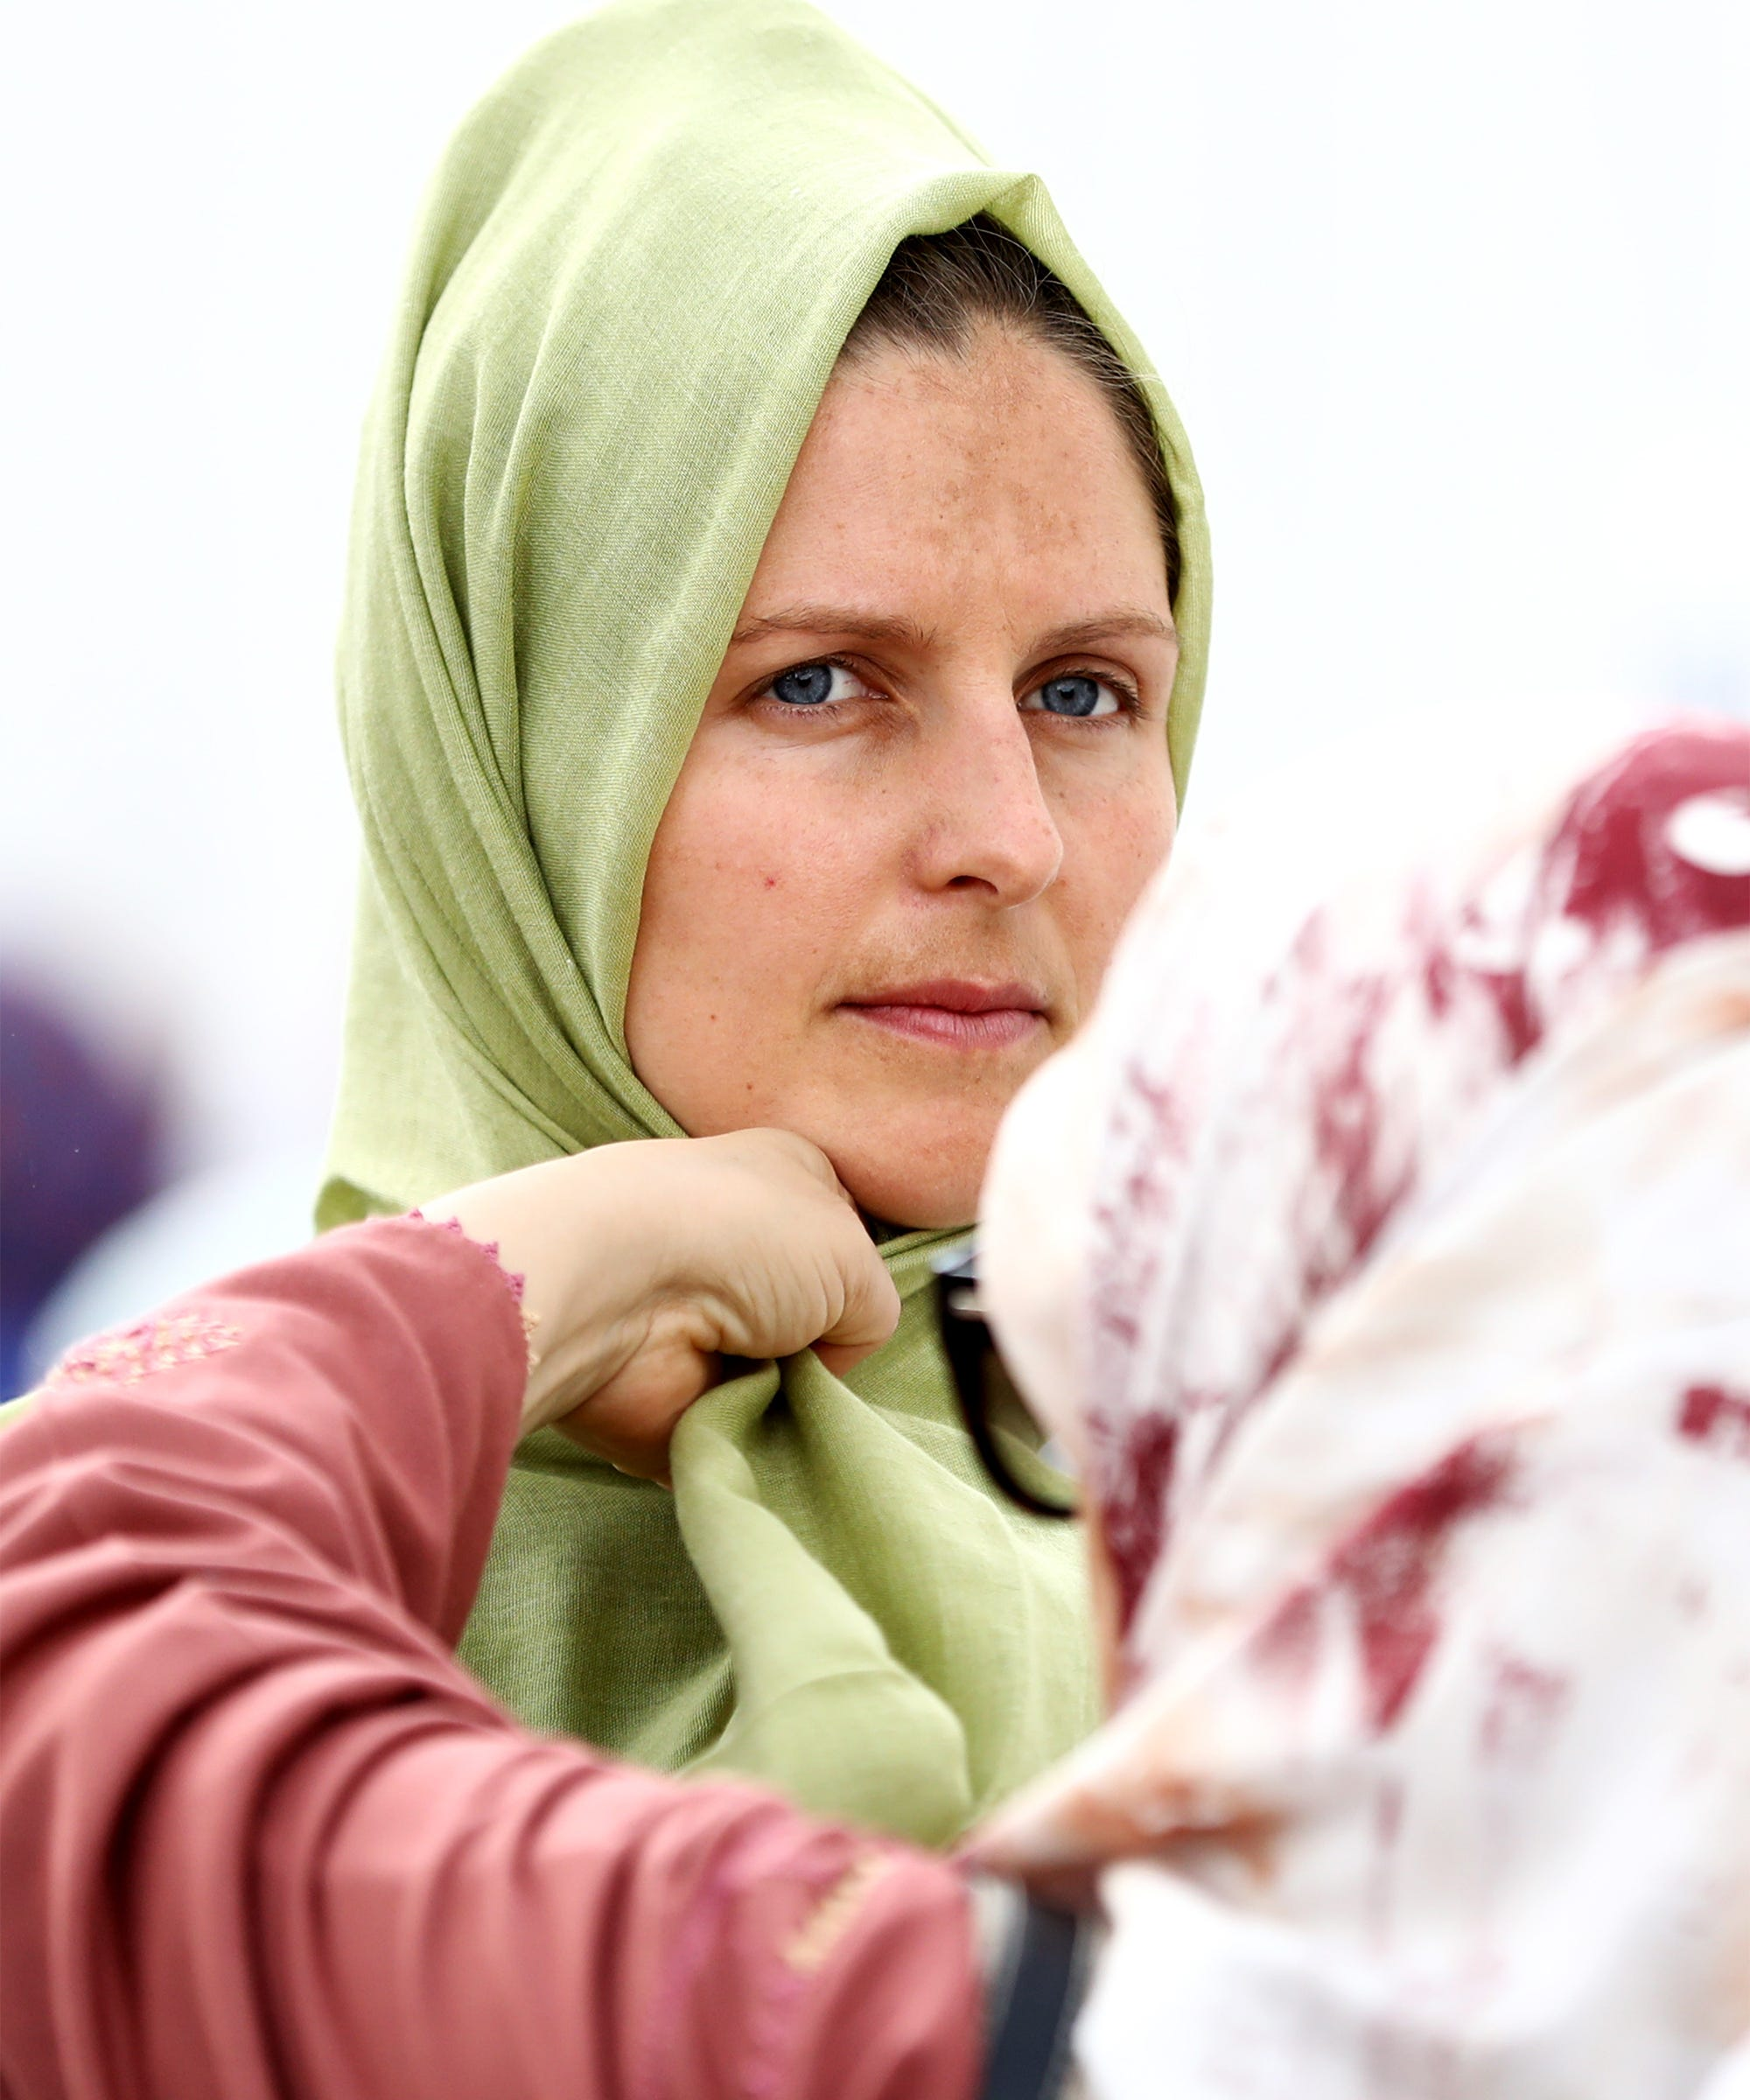 New Zealand Women Wear Headscarves To Support Muslims After Christchurch Shooting